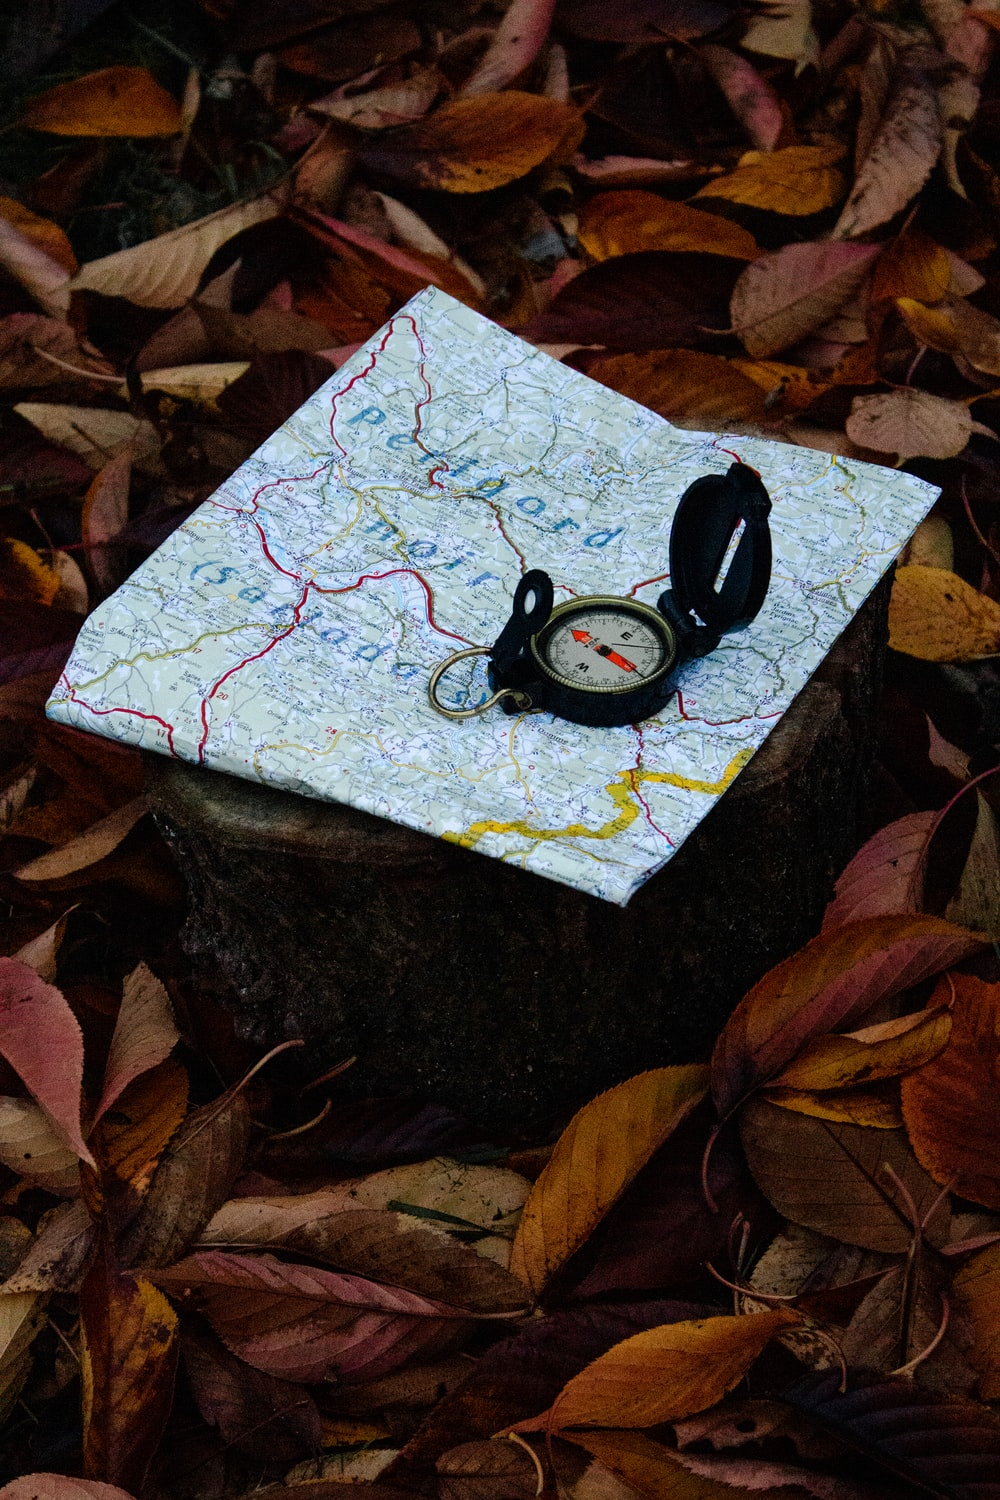 compass on white map surrounded dried leaves